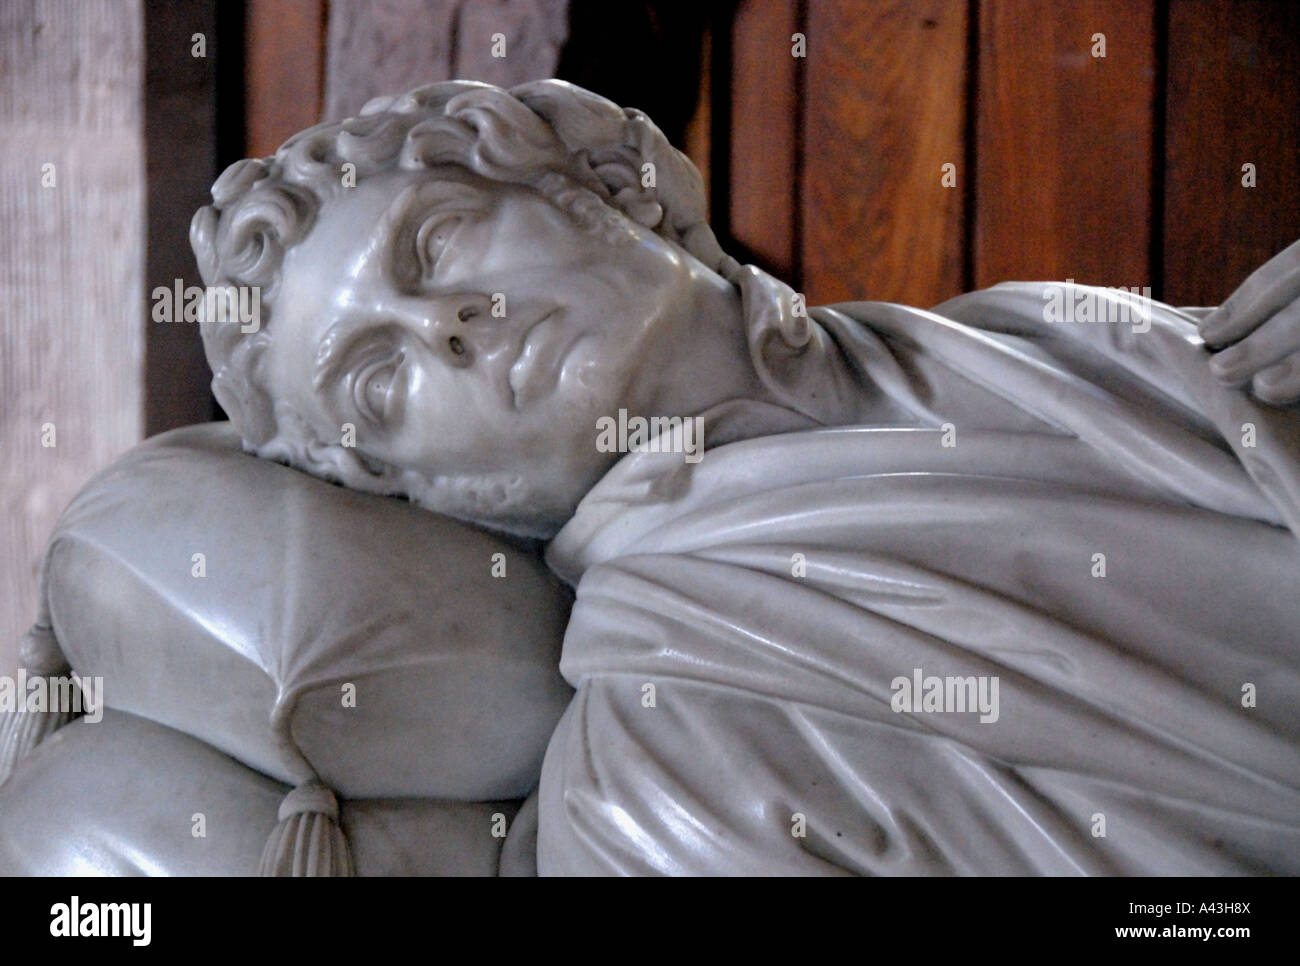 monument-to-robert-southey-detail-parish-church-of-stkentigern-crosthwaite-A43H8X.jpg